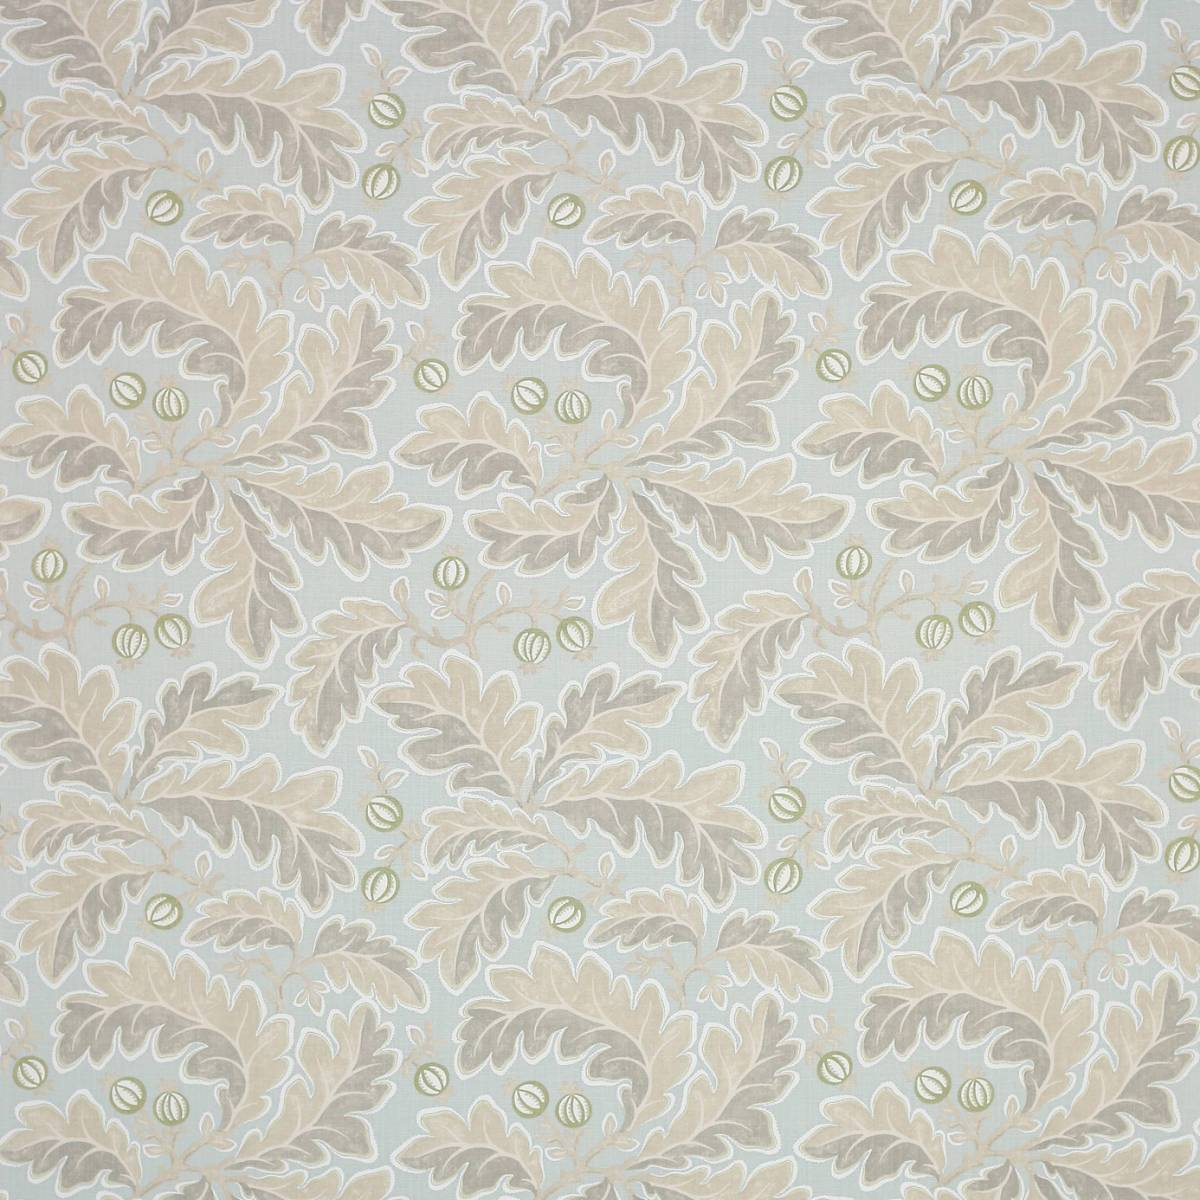 Melbury Fabric Old Blue F3824 04 Colefax Amp Fowler